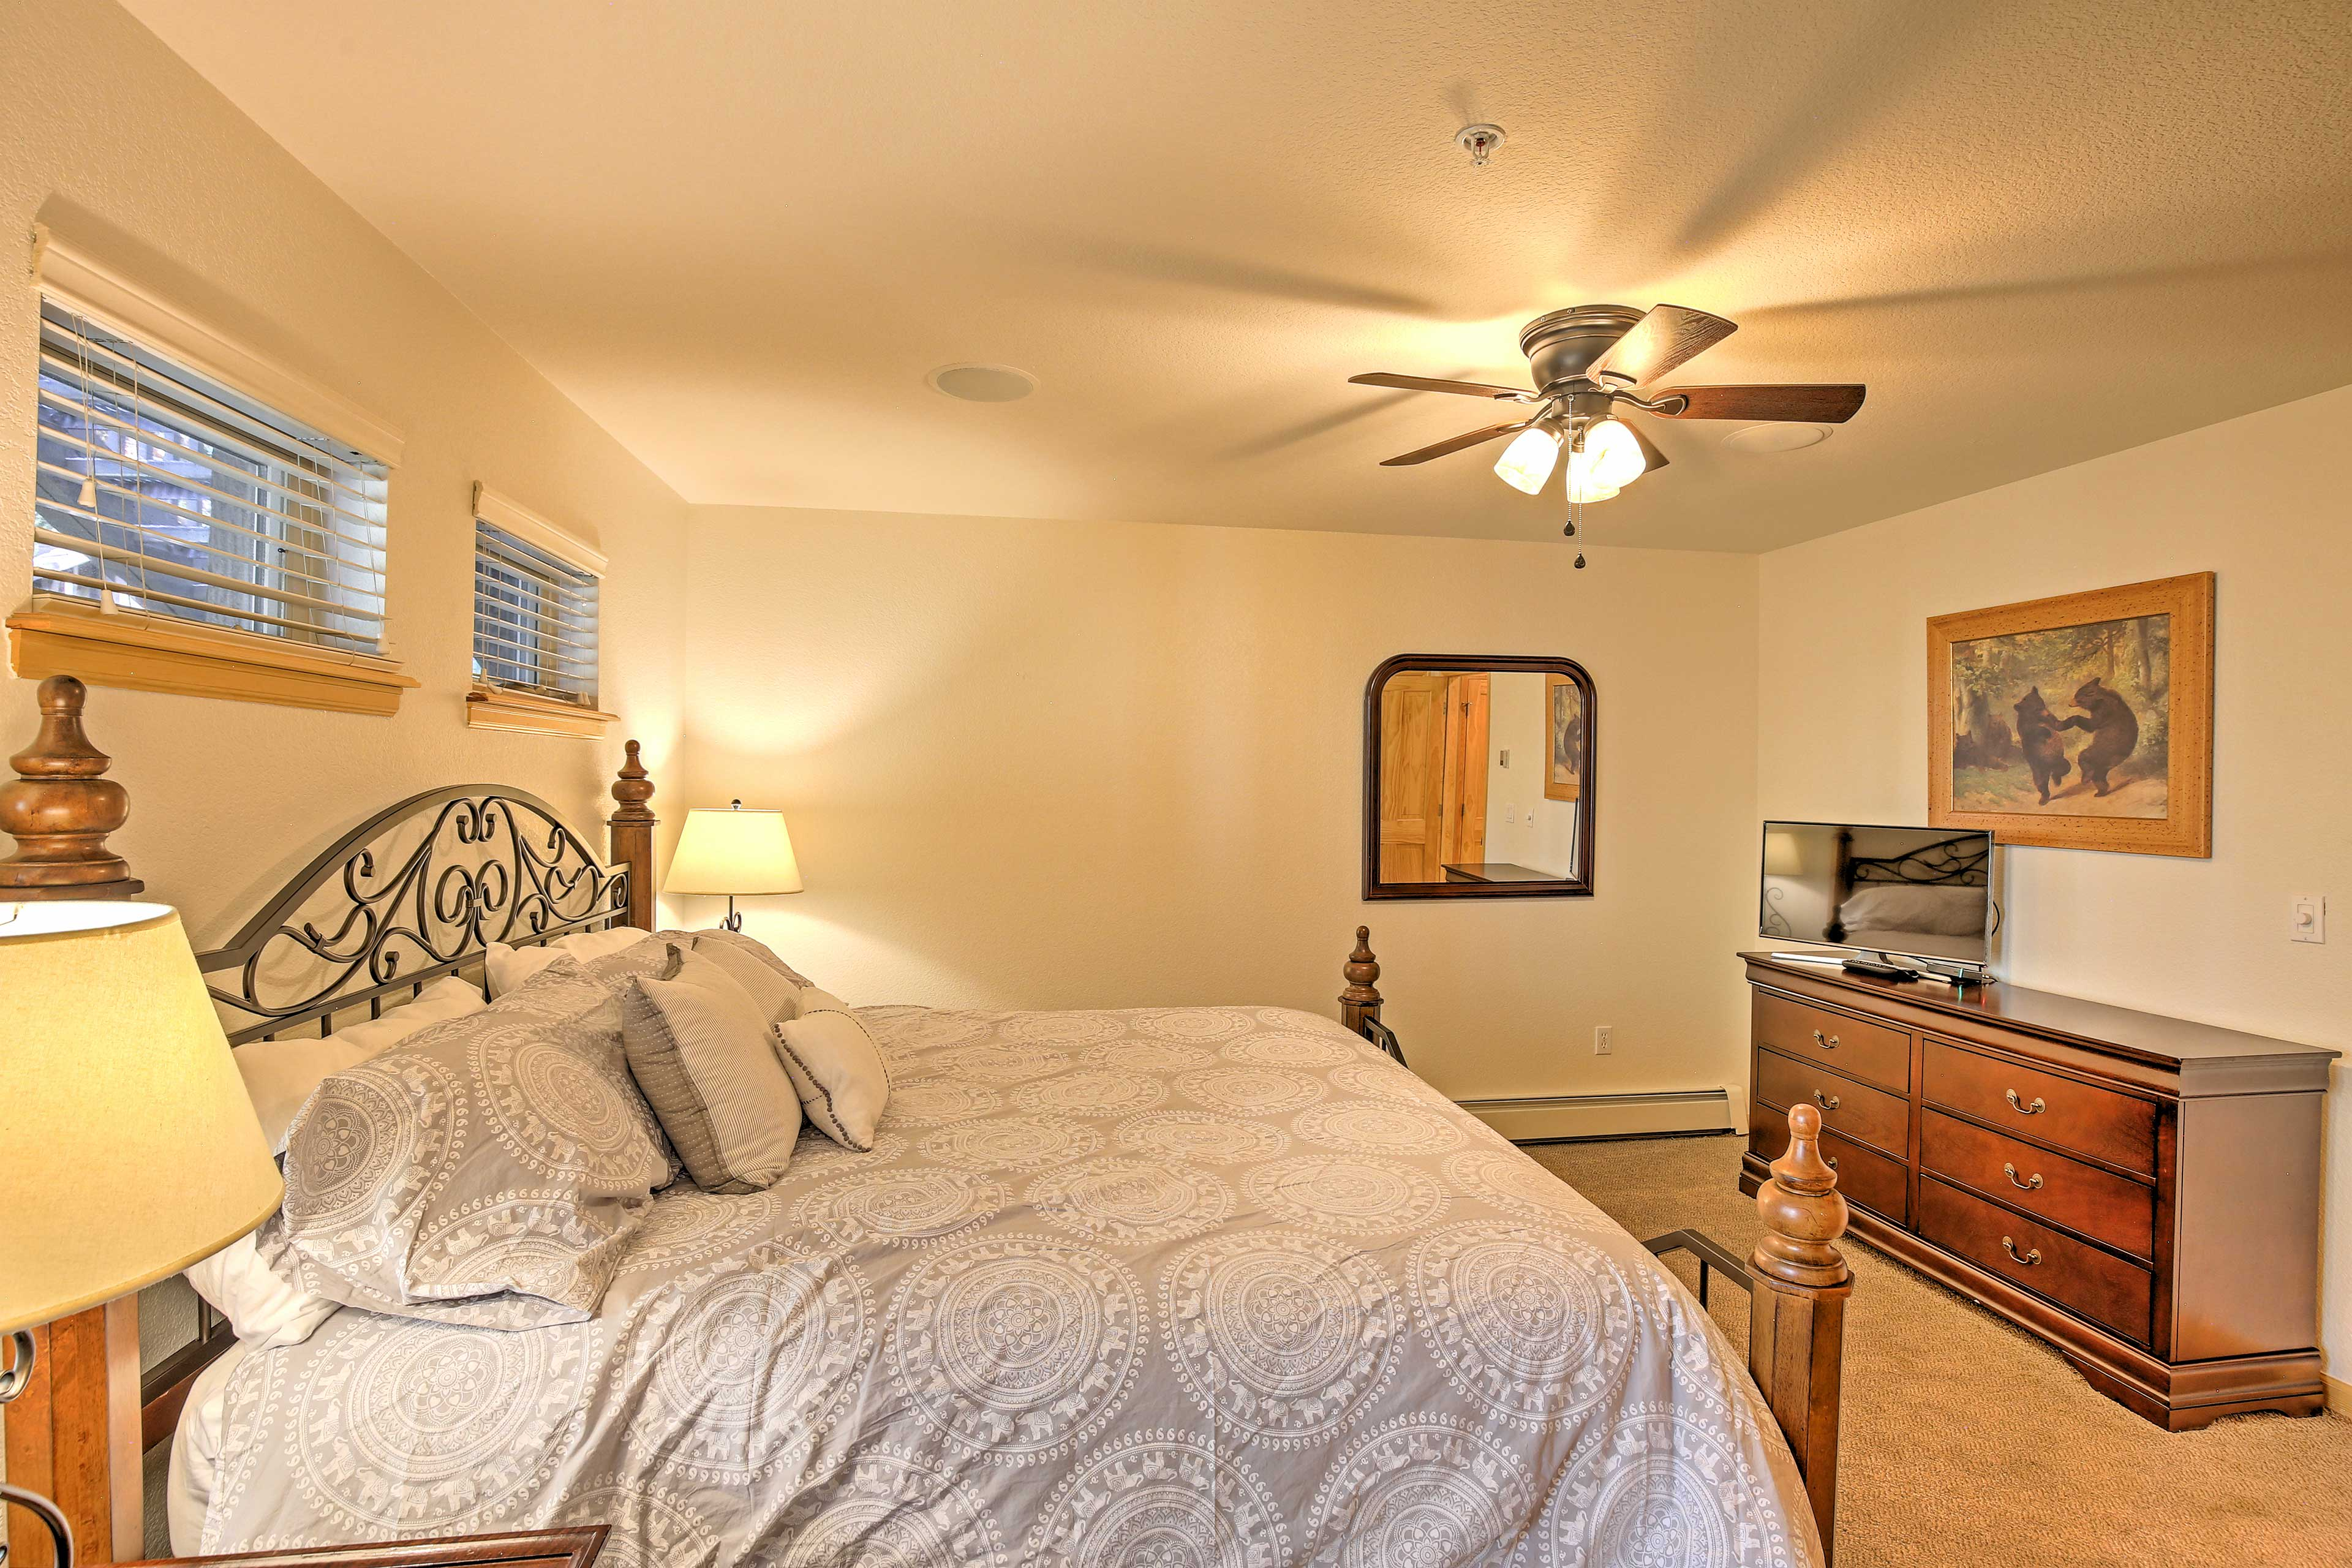 The master bedroom boasts a new king bed, digital TV, and an en-suite bathroom.